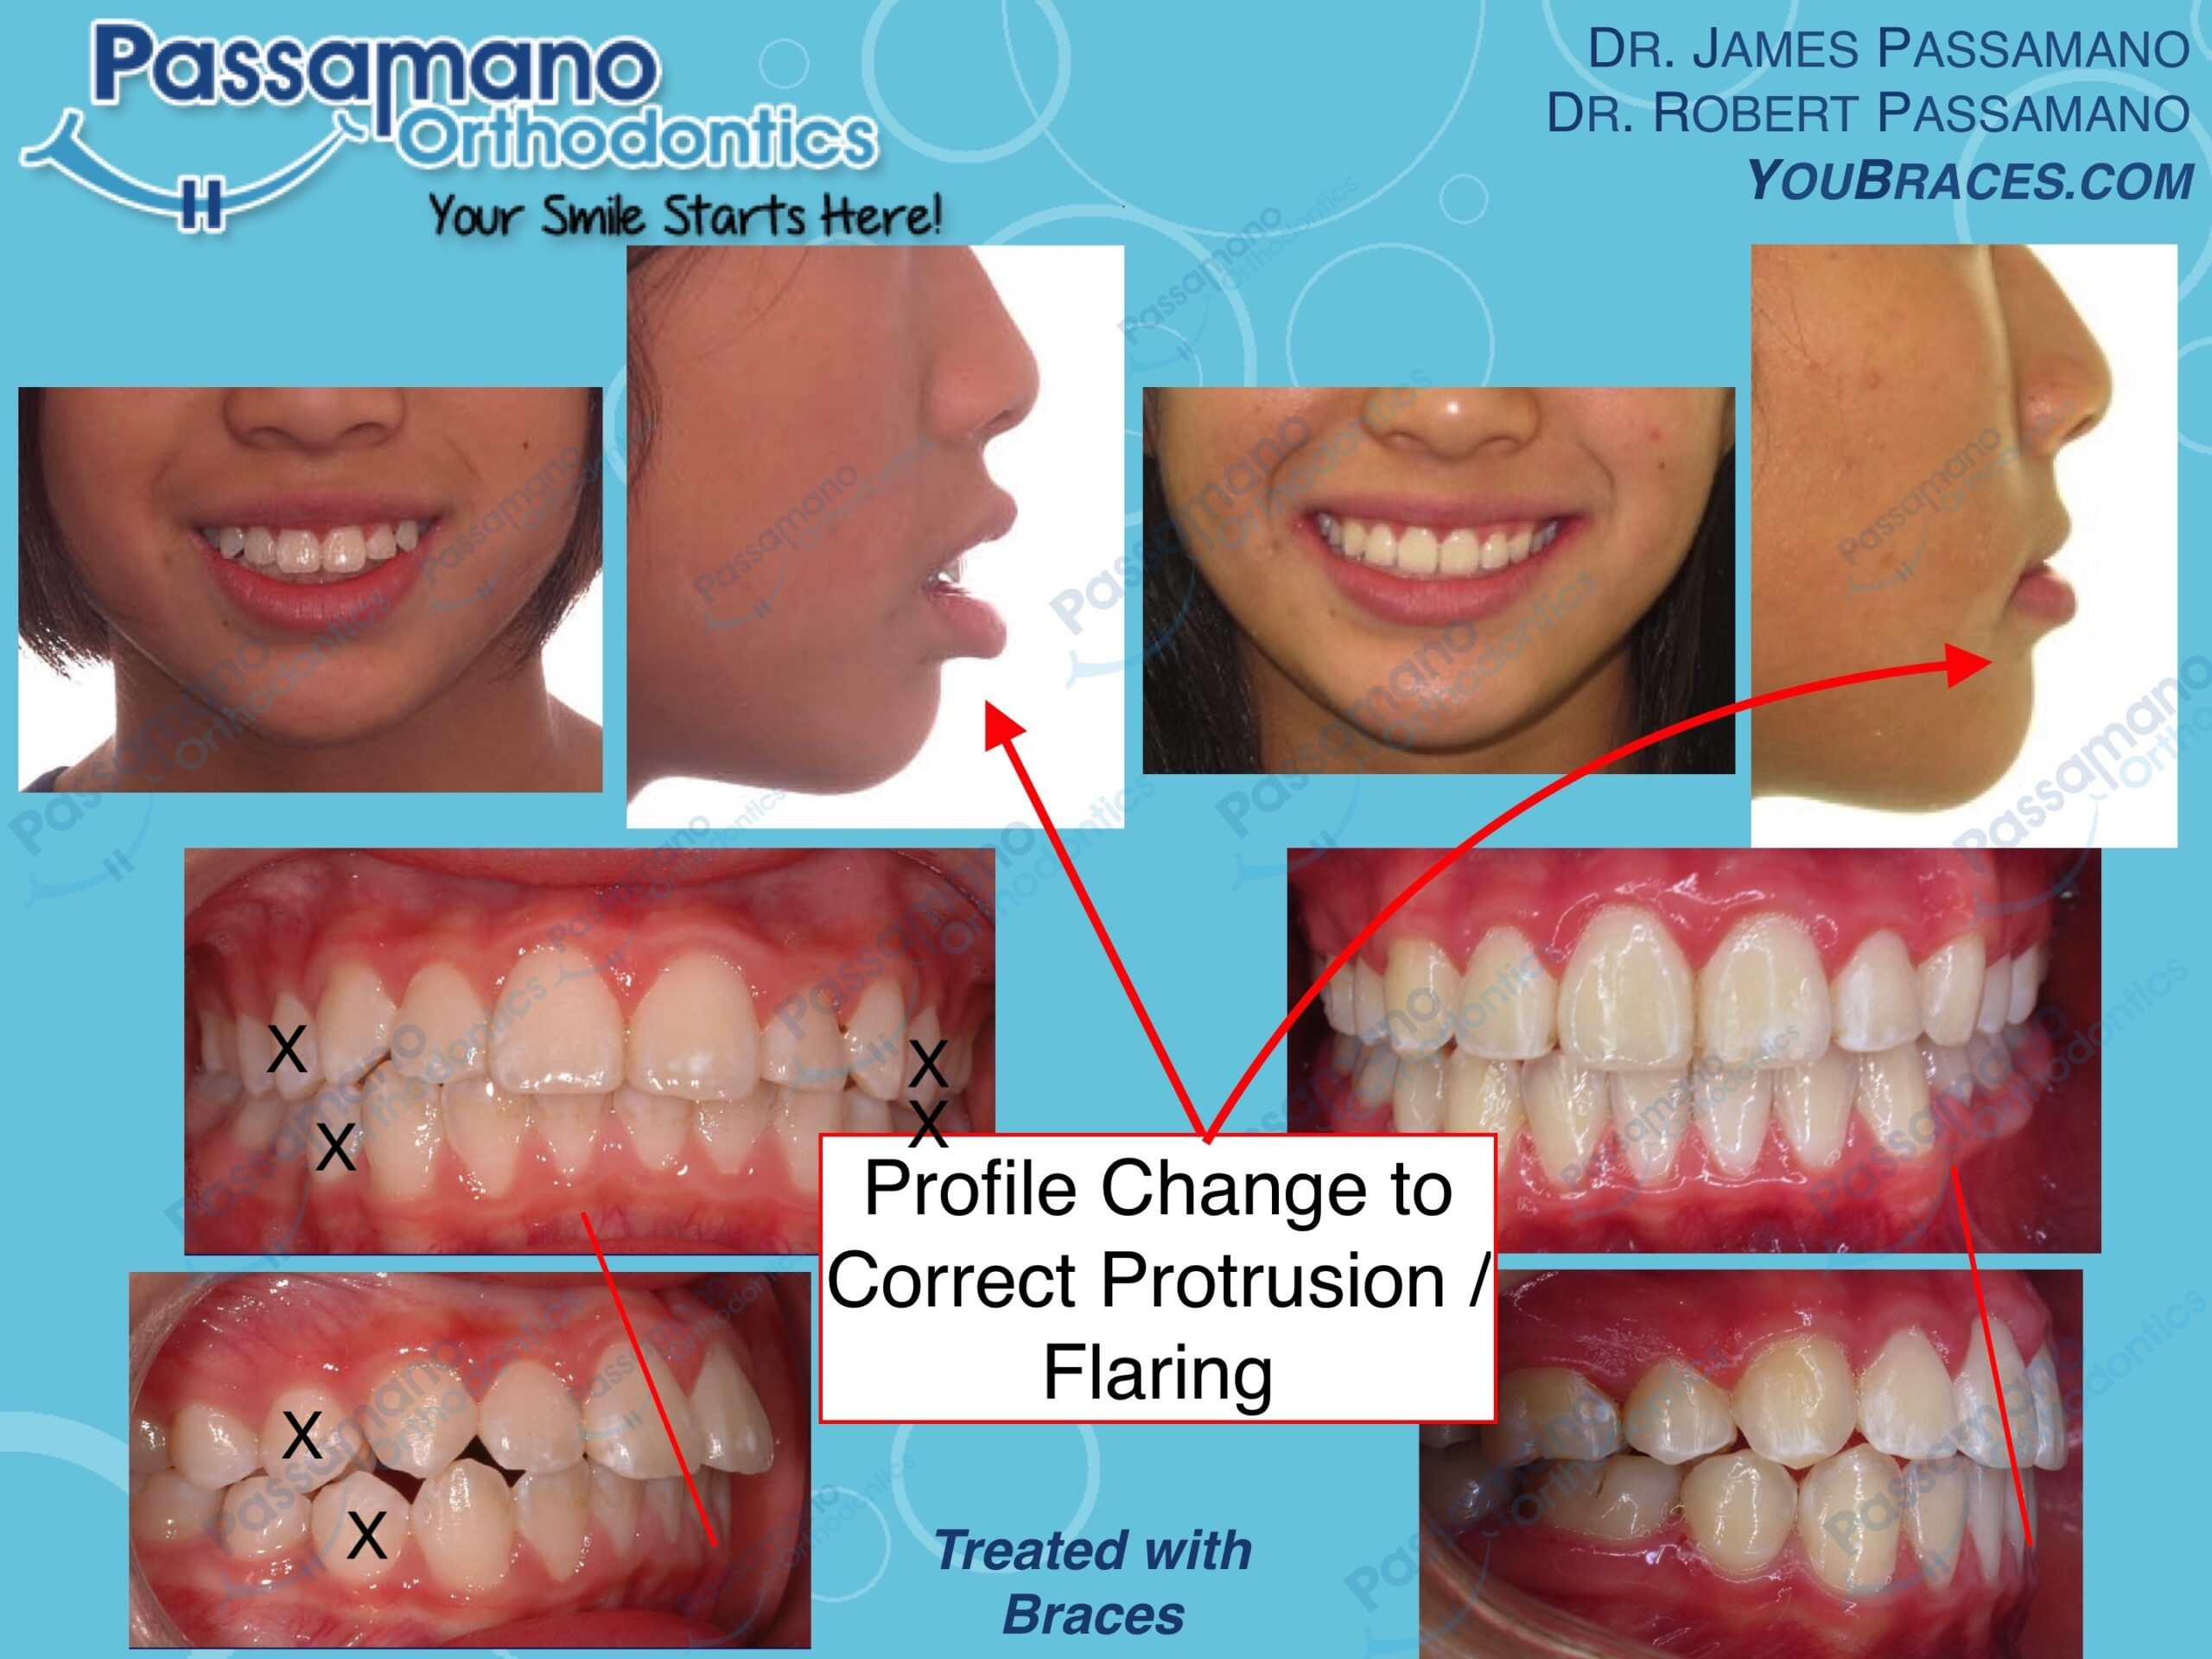 4 Premolar Teeth Extracted For Amazing Profile And Lip Changes A Passamano Orthodontics